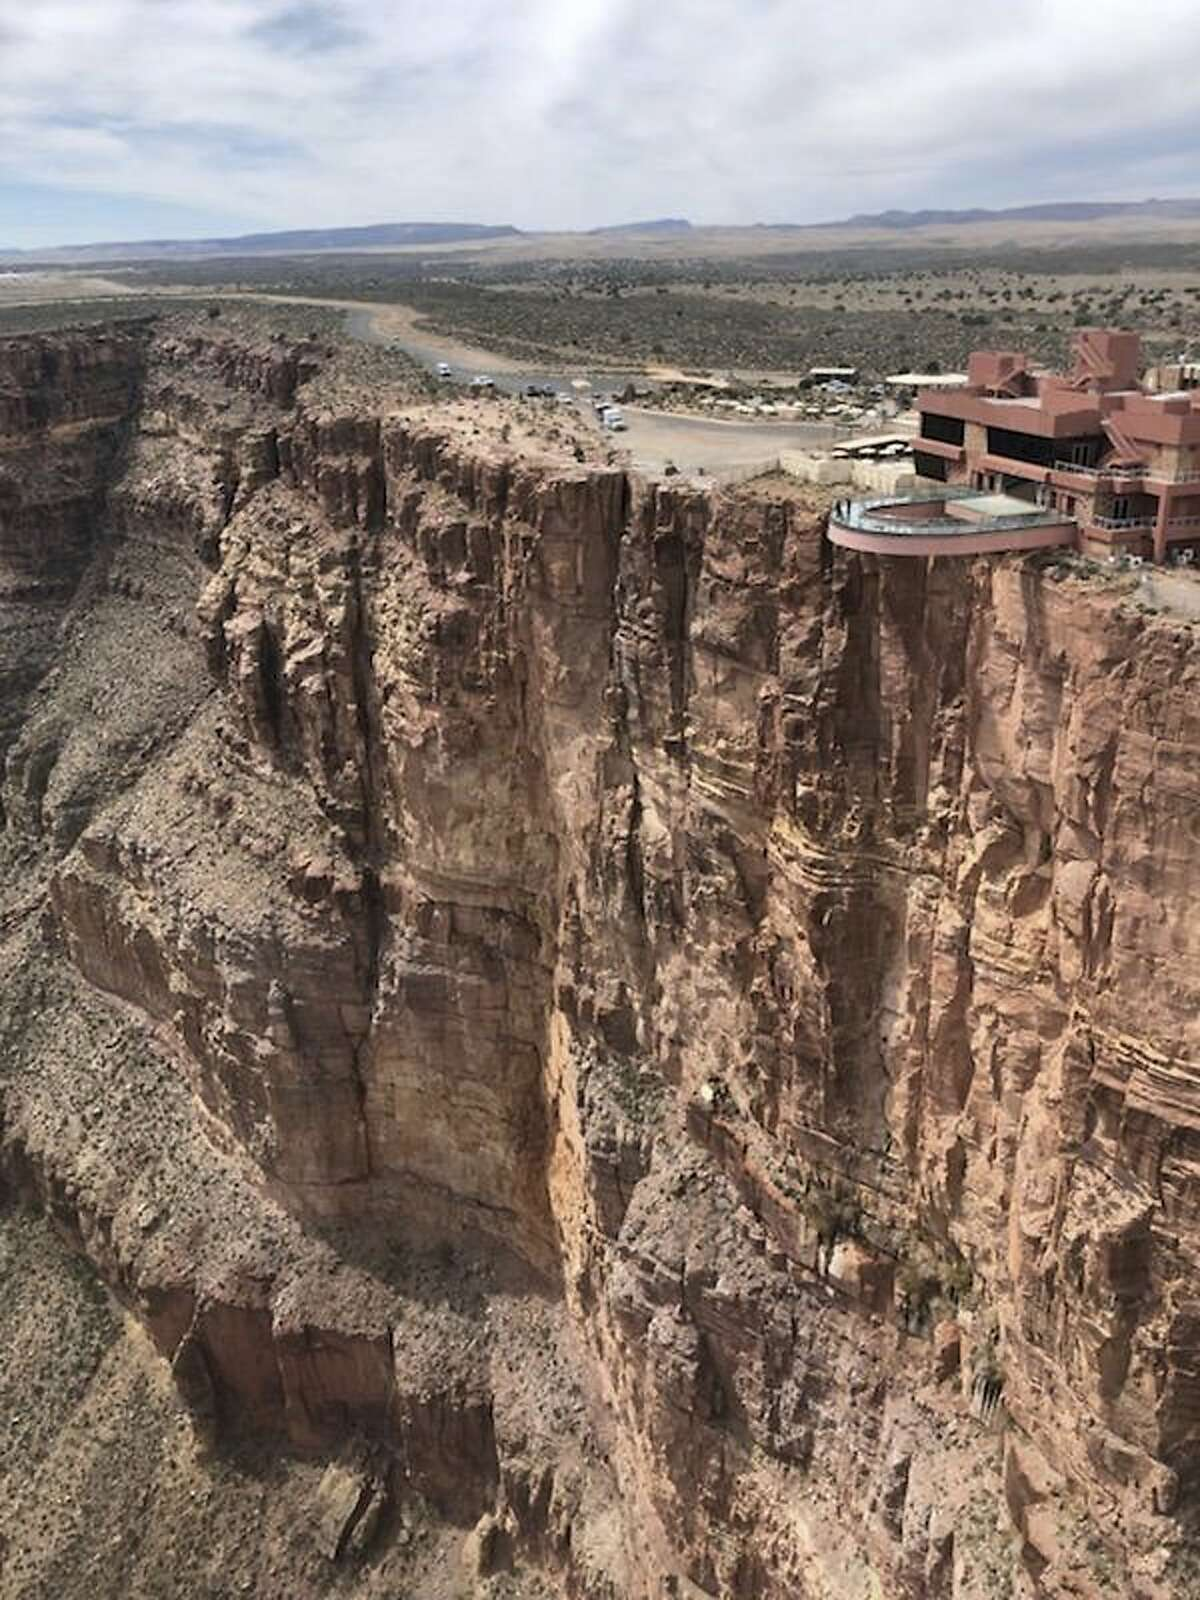 This Thursday, March 28, 2019 photo, provided by the Mohave County Sheriff's Office, shows the area where a tourist slipped and fell at the Grand Canyon on the Hualapai reservation in northwestern Arizona. The popular tourist destination on the western end of the Grand Canyon has reopened a day after the fatal fall. Eagle Point and the Grand Canyon Skywalk had closed Thursday after a Chinese man in his 50s slipped and fell while taking photographs. His body was recovered from 1,000 feet below the rim. (Mohave County Sheriff's Office via AP)